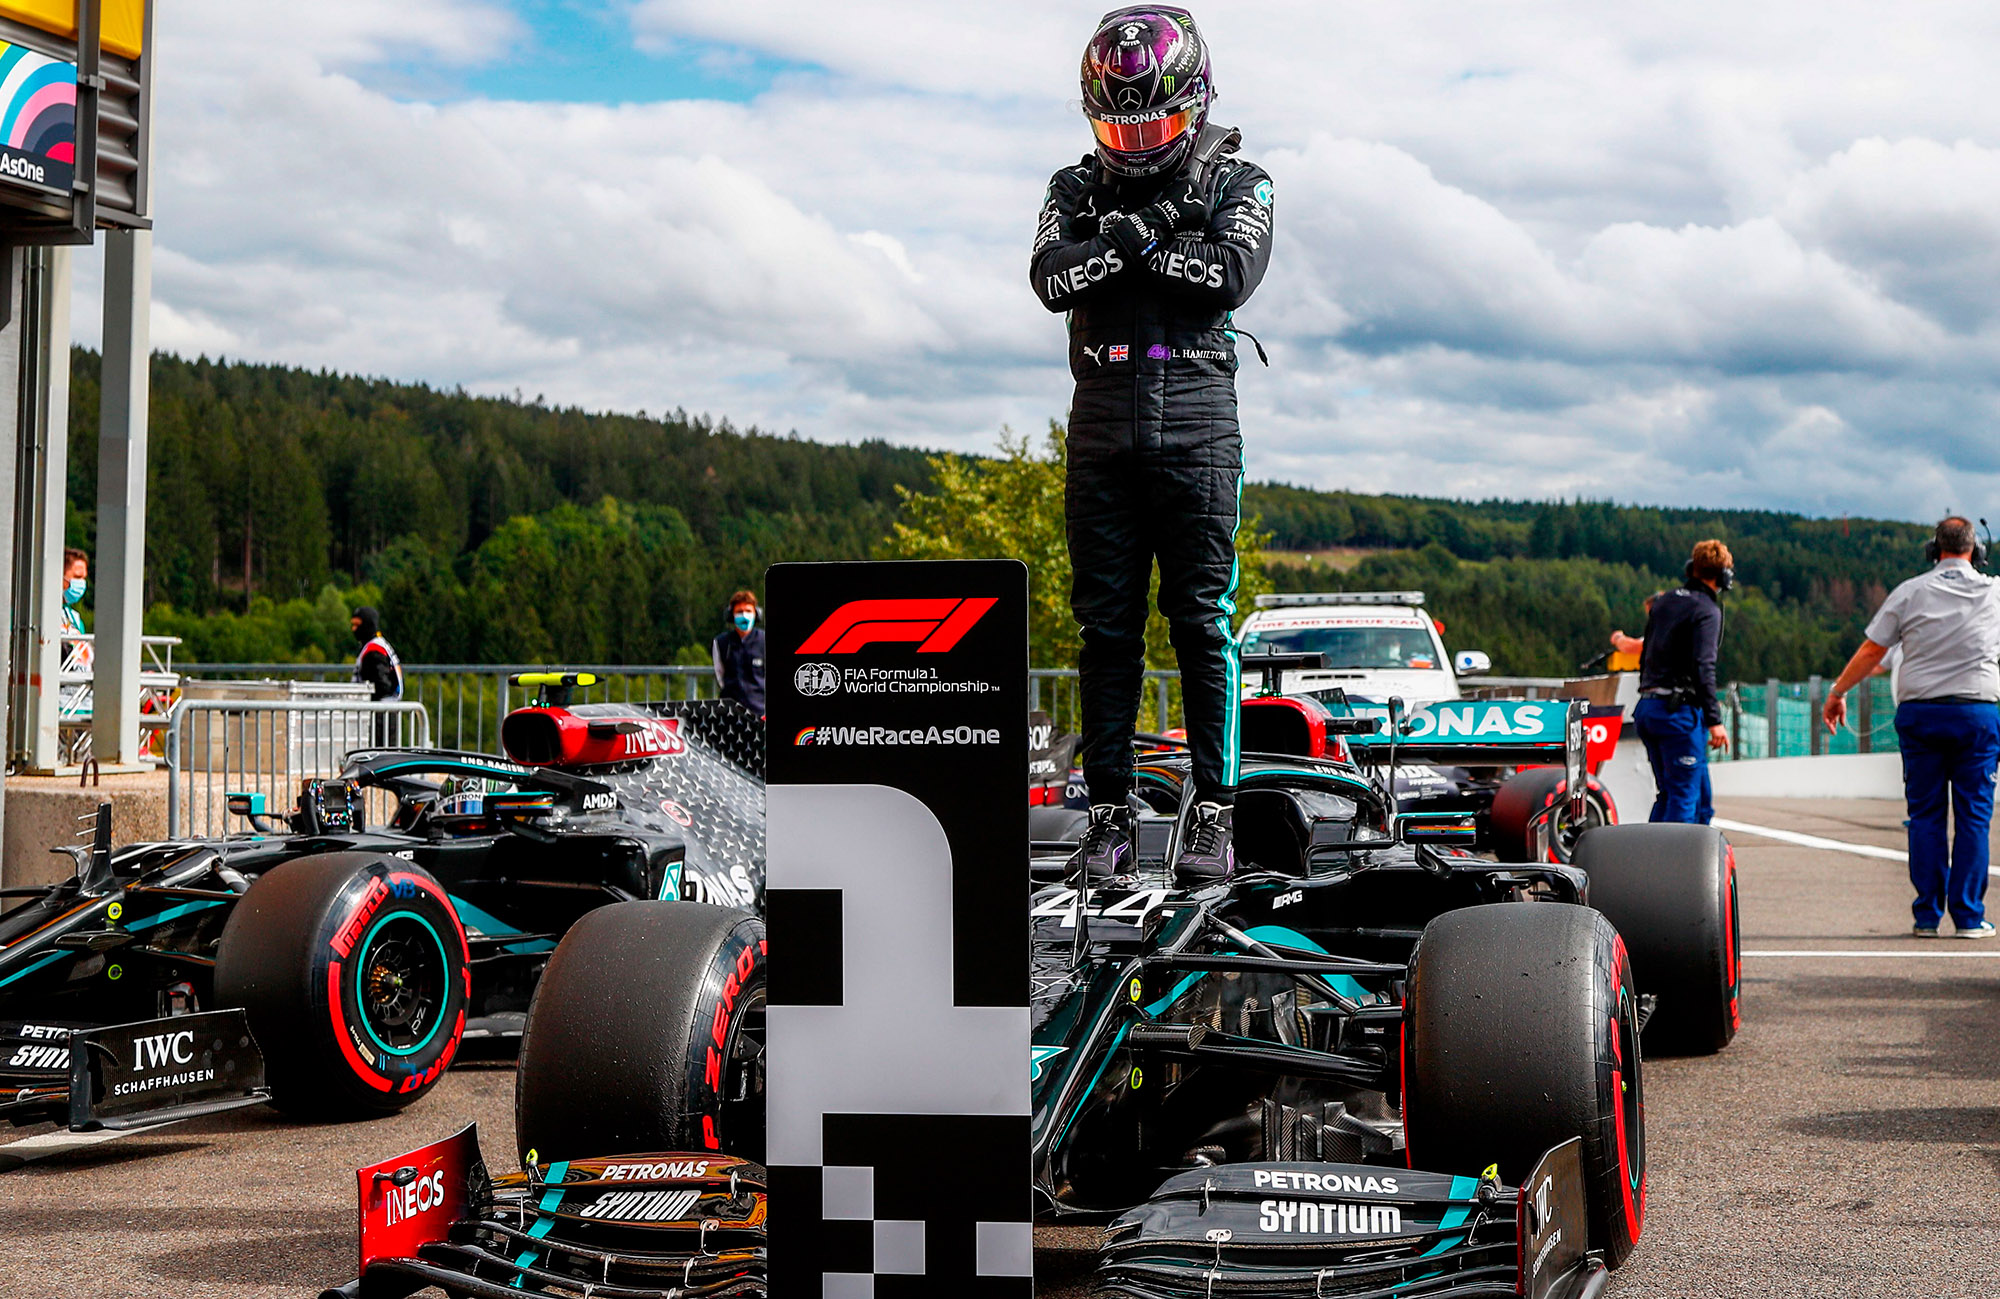 Lewis Hamilton pays tribute to Chadwick Boseman after qualifying on pole for the 2020 f1 Belgian Grand Prix at Spa Francorchamps